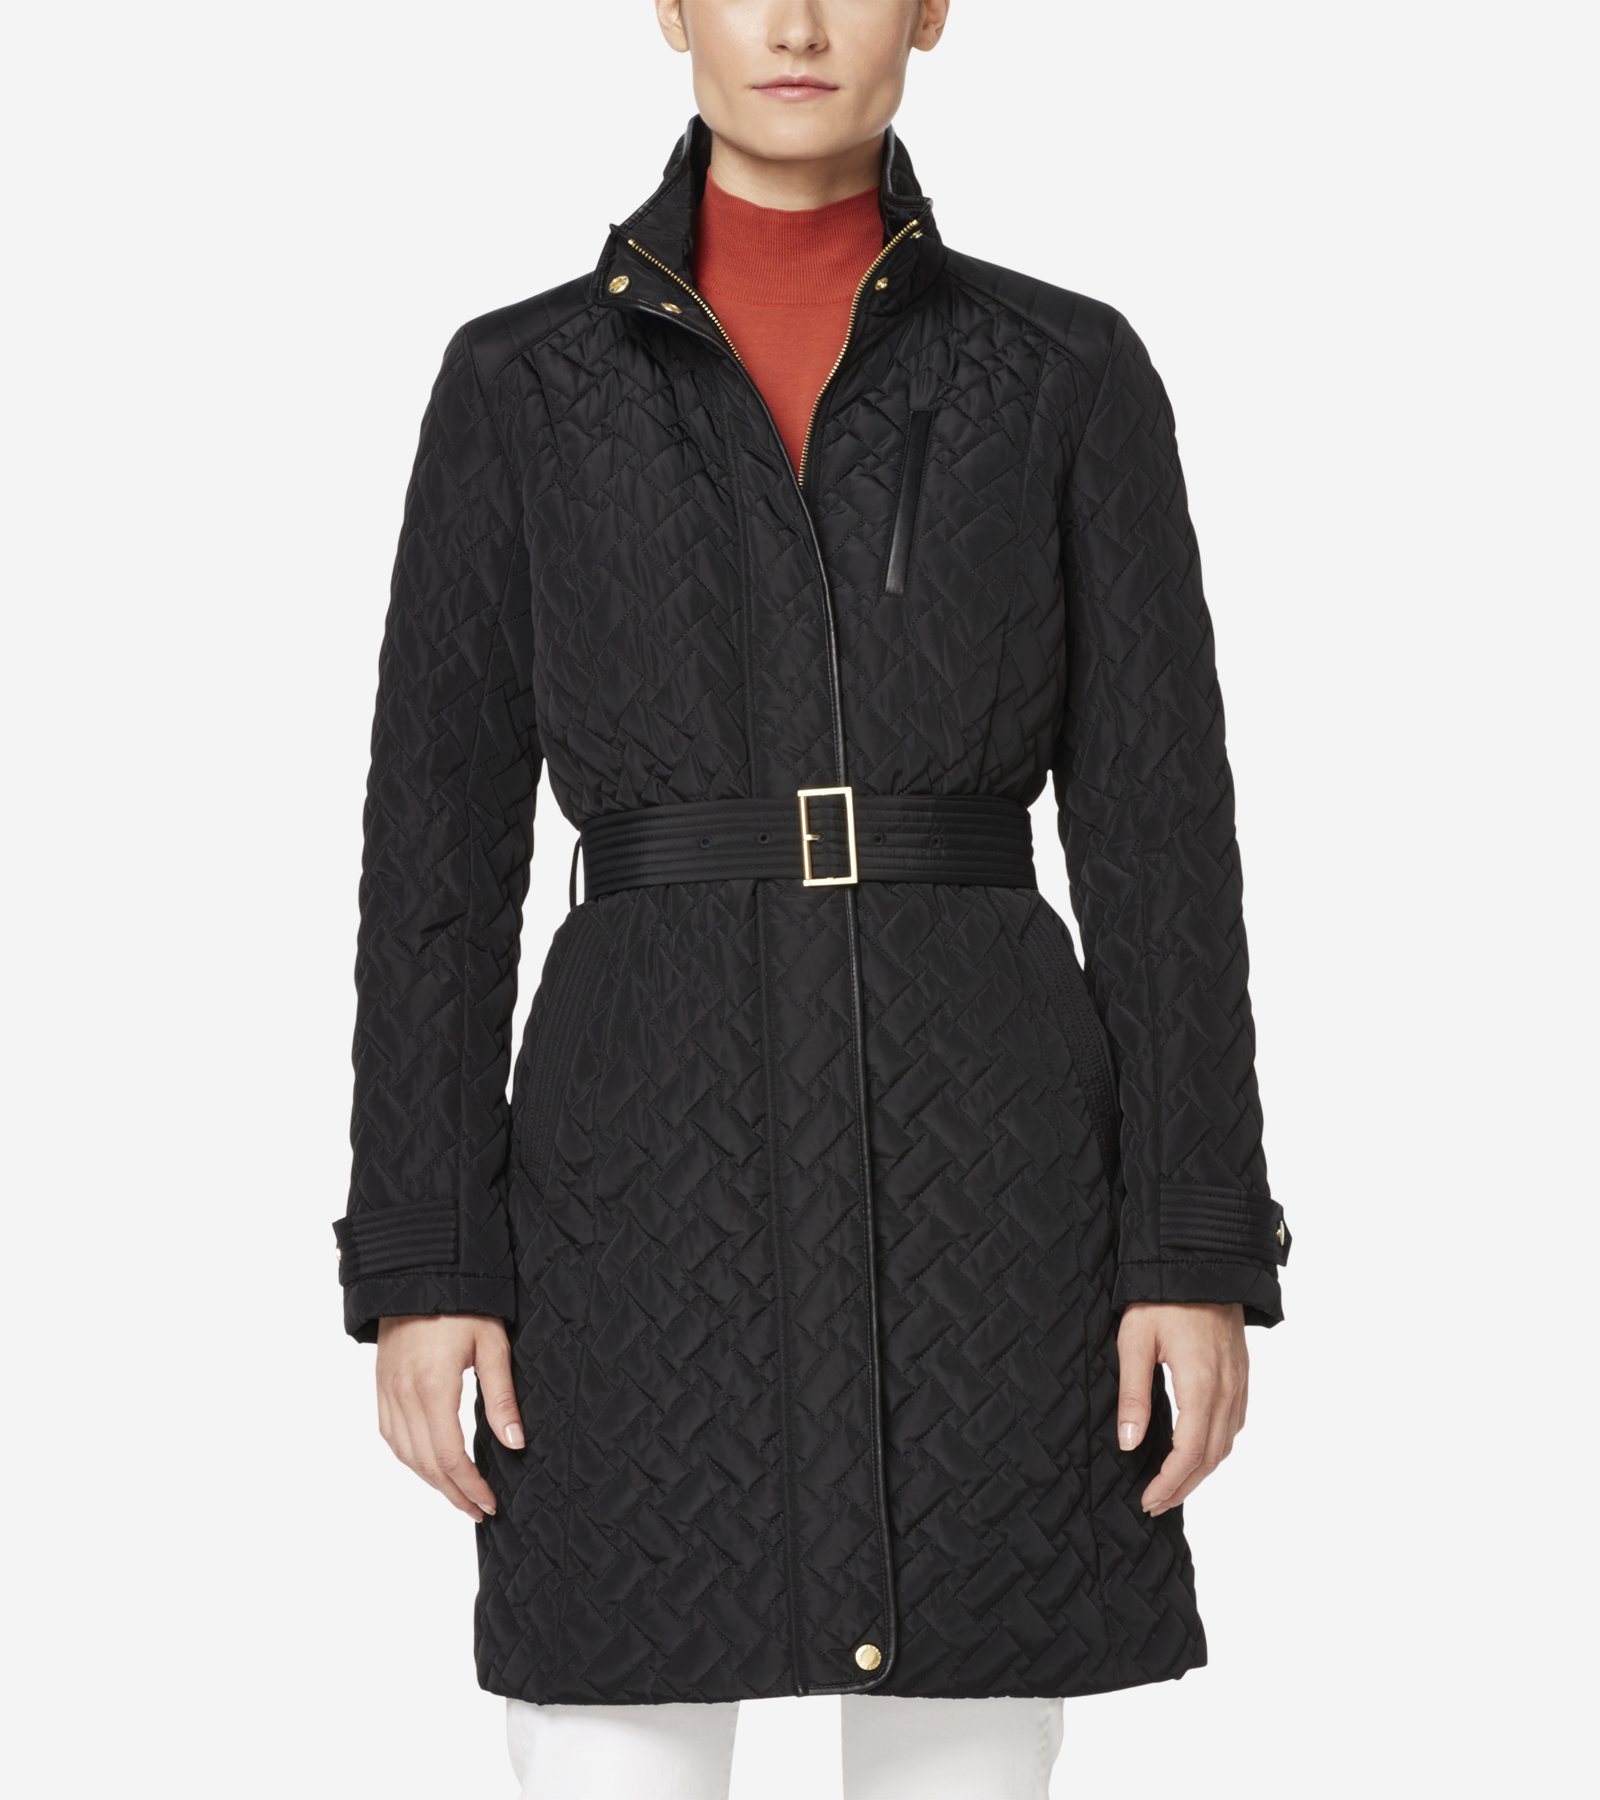 e71aa543a Signature Quilted Zip Front Coat